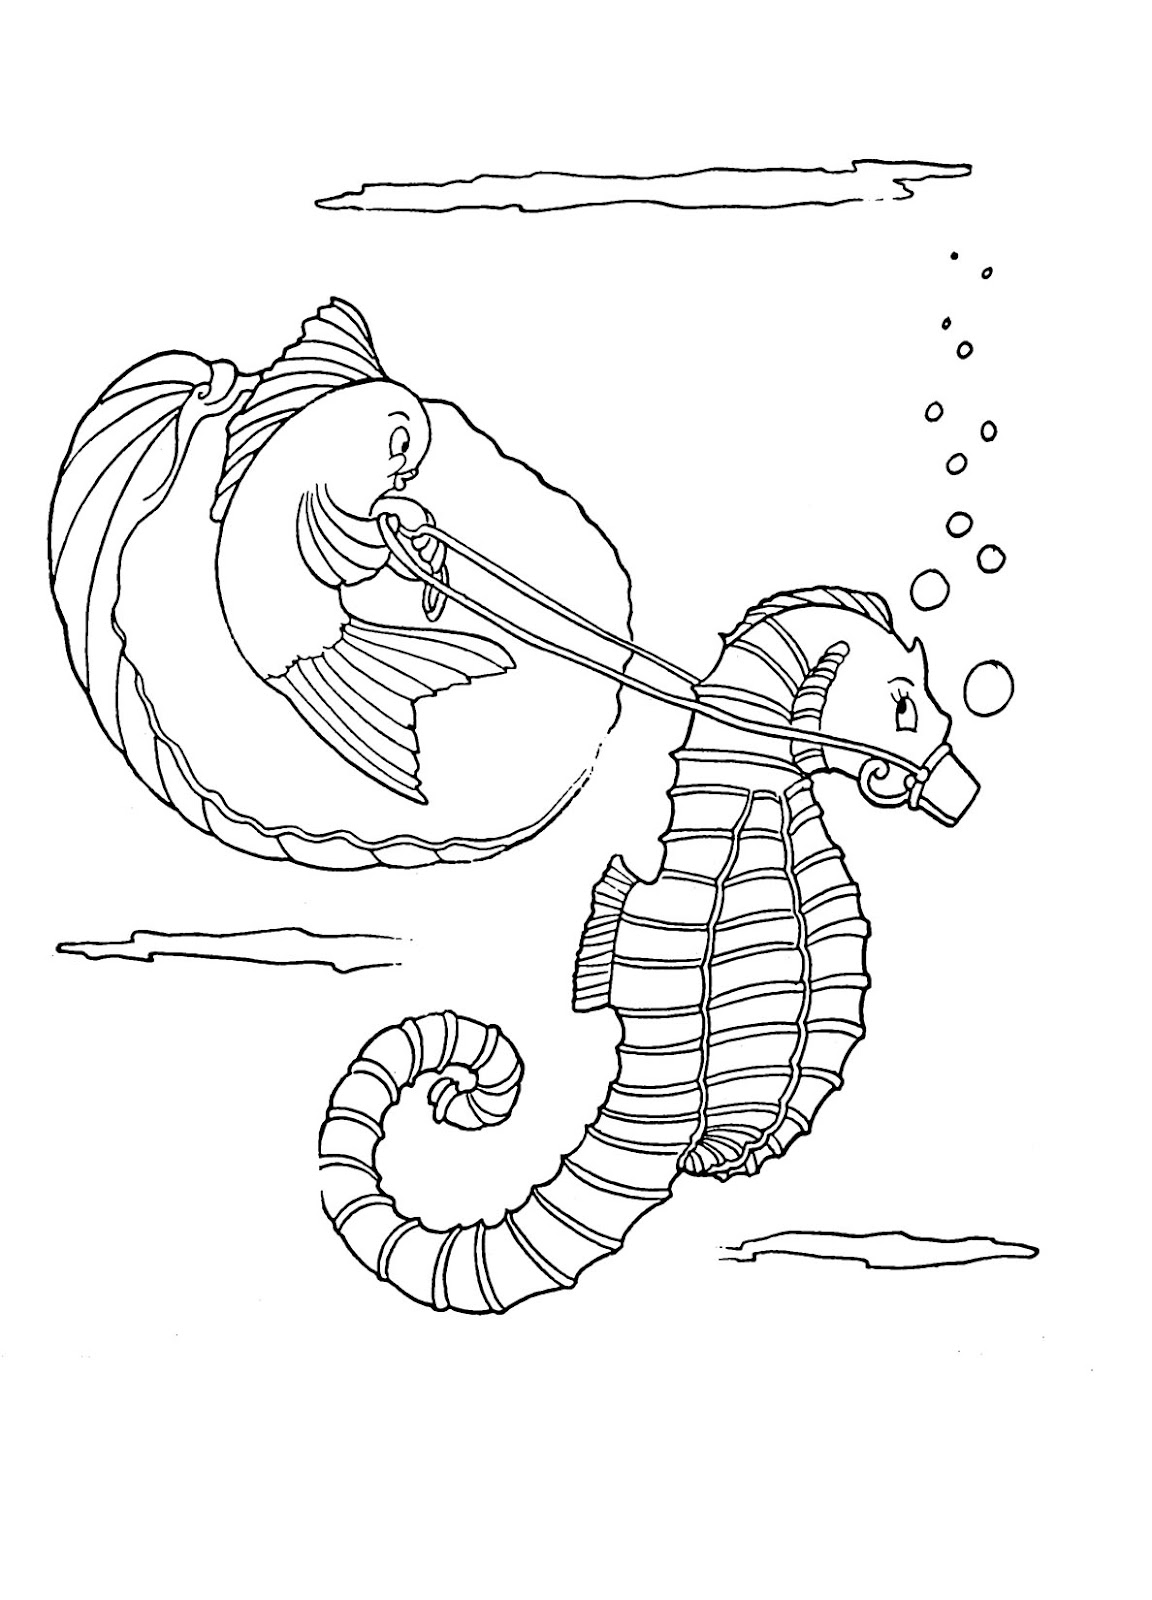 Kids Printable - Seahorse Coloring Page - The Graphics Fairy